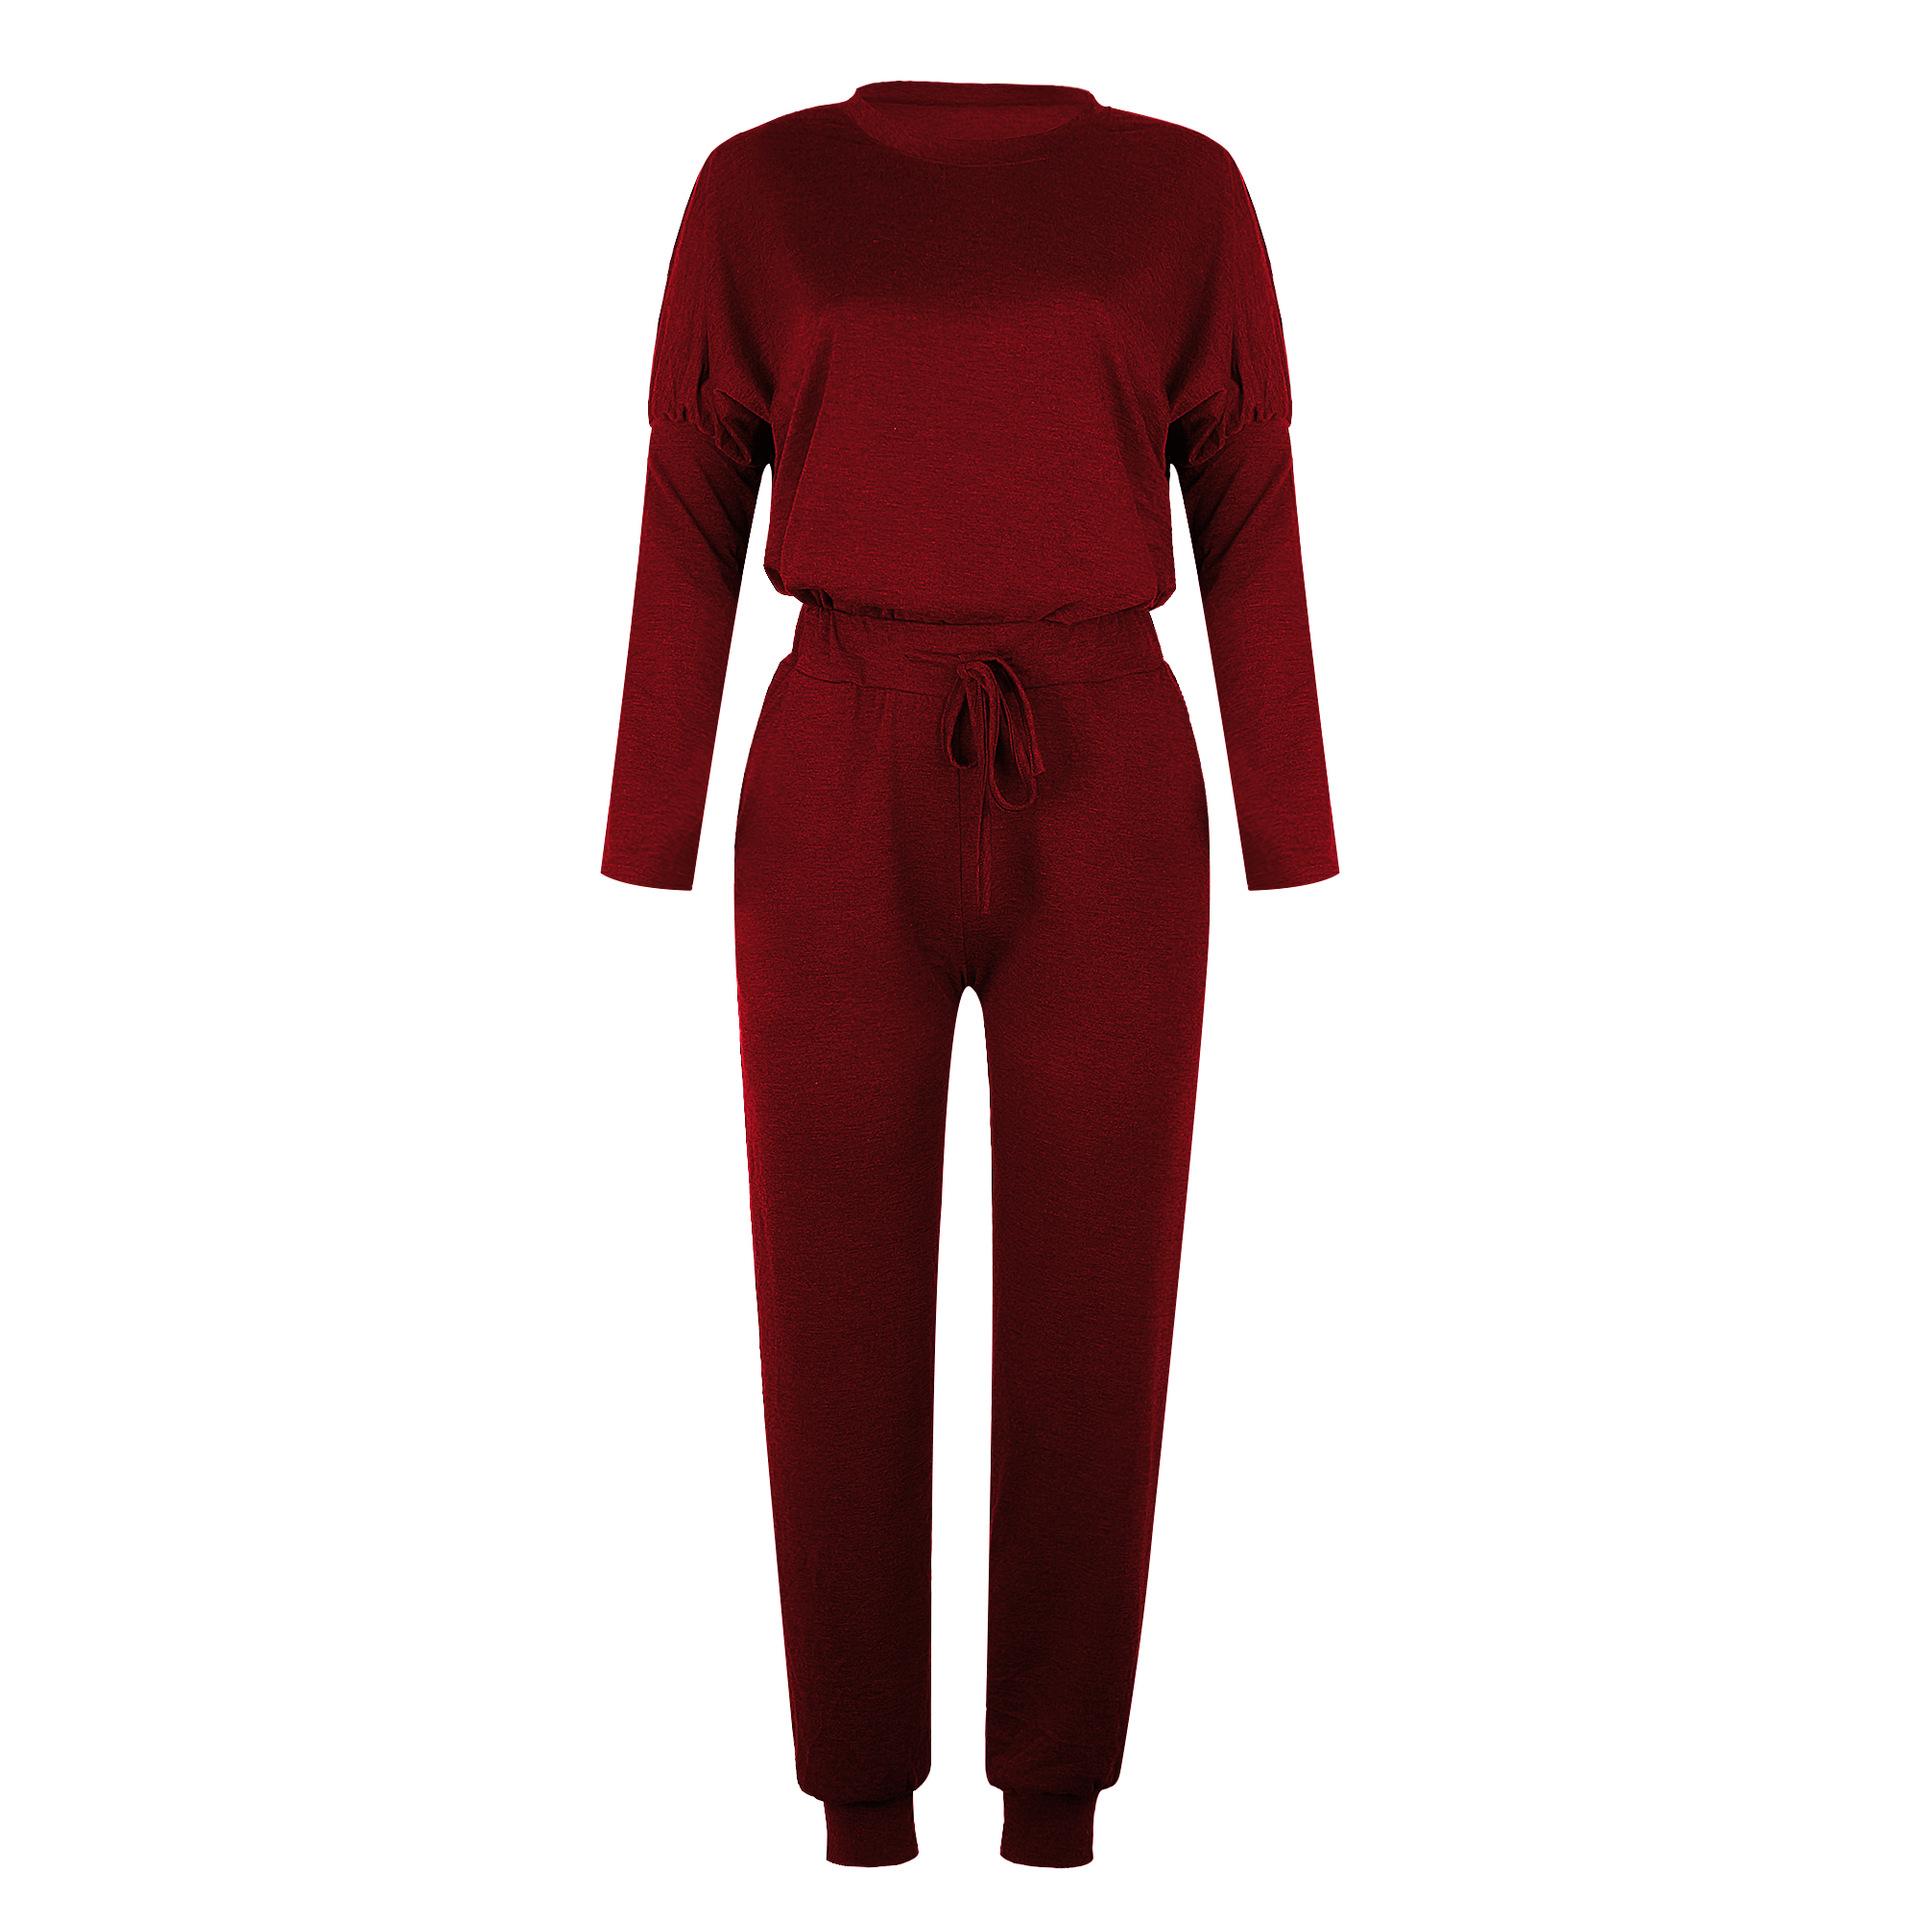 new women's autumn and winter loose solid color long-sleeved casual suit NSKX5783